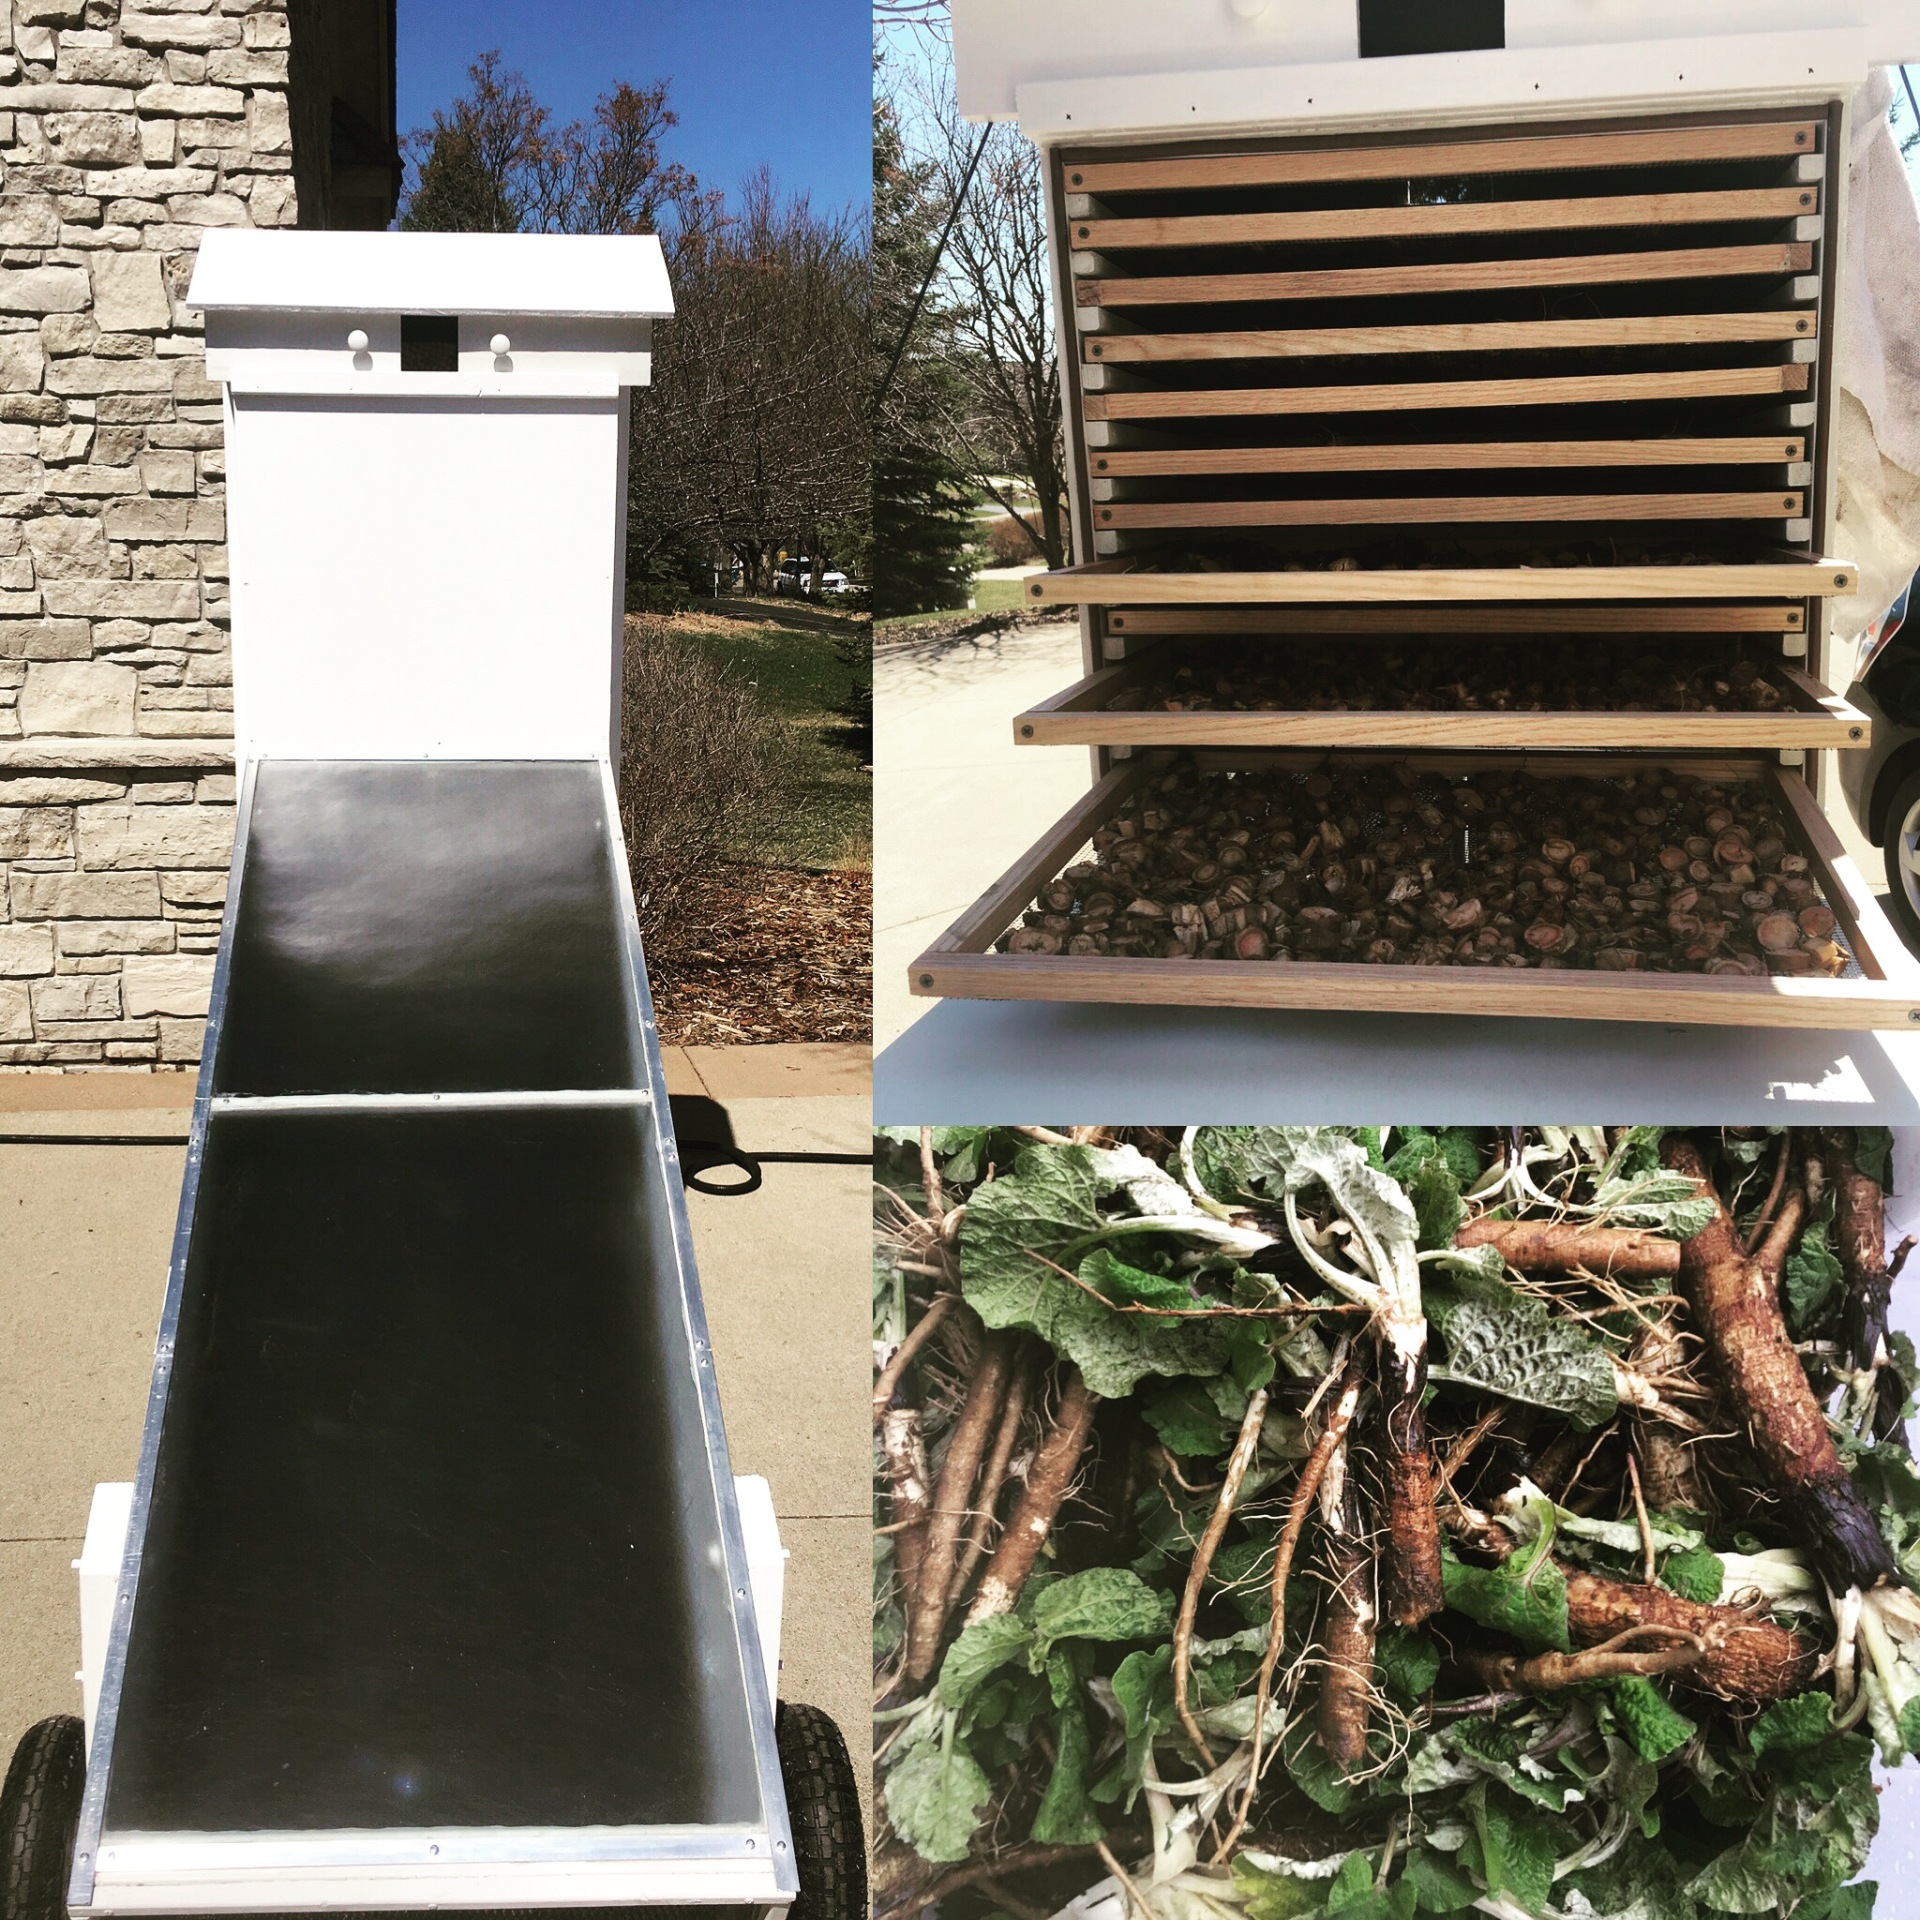 Solar Dehydrator finished and loaded with Burdock Root!